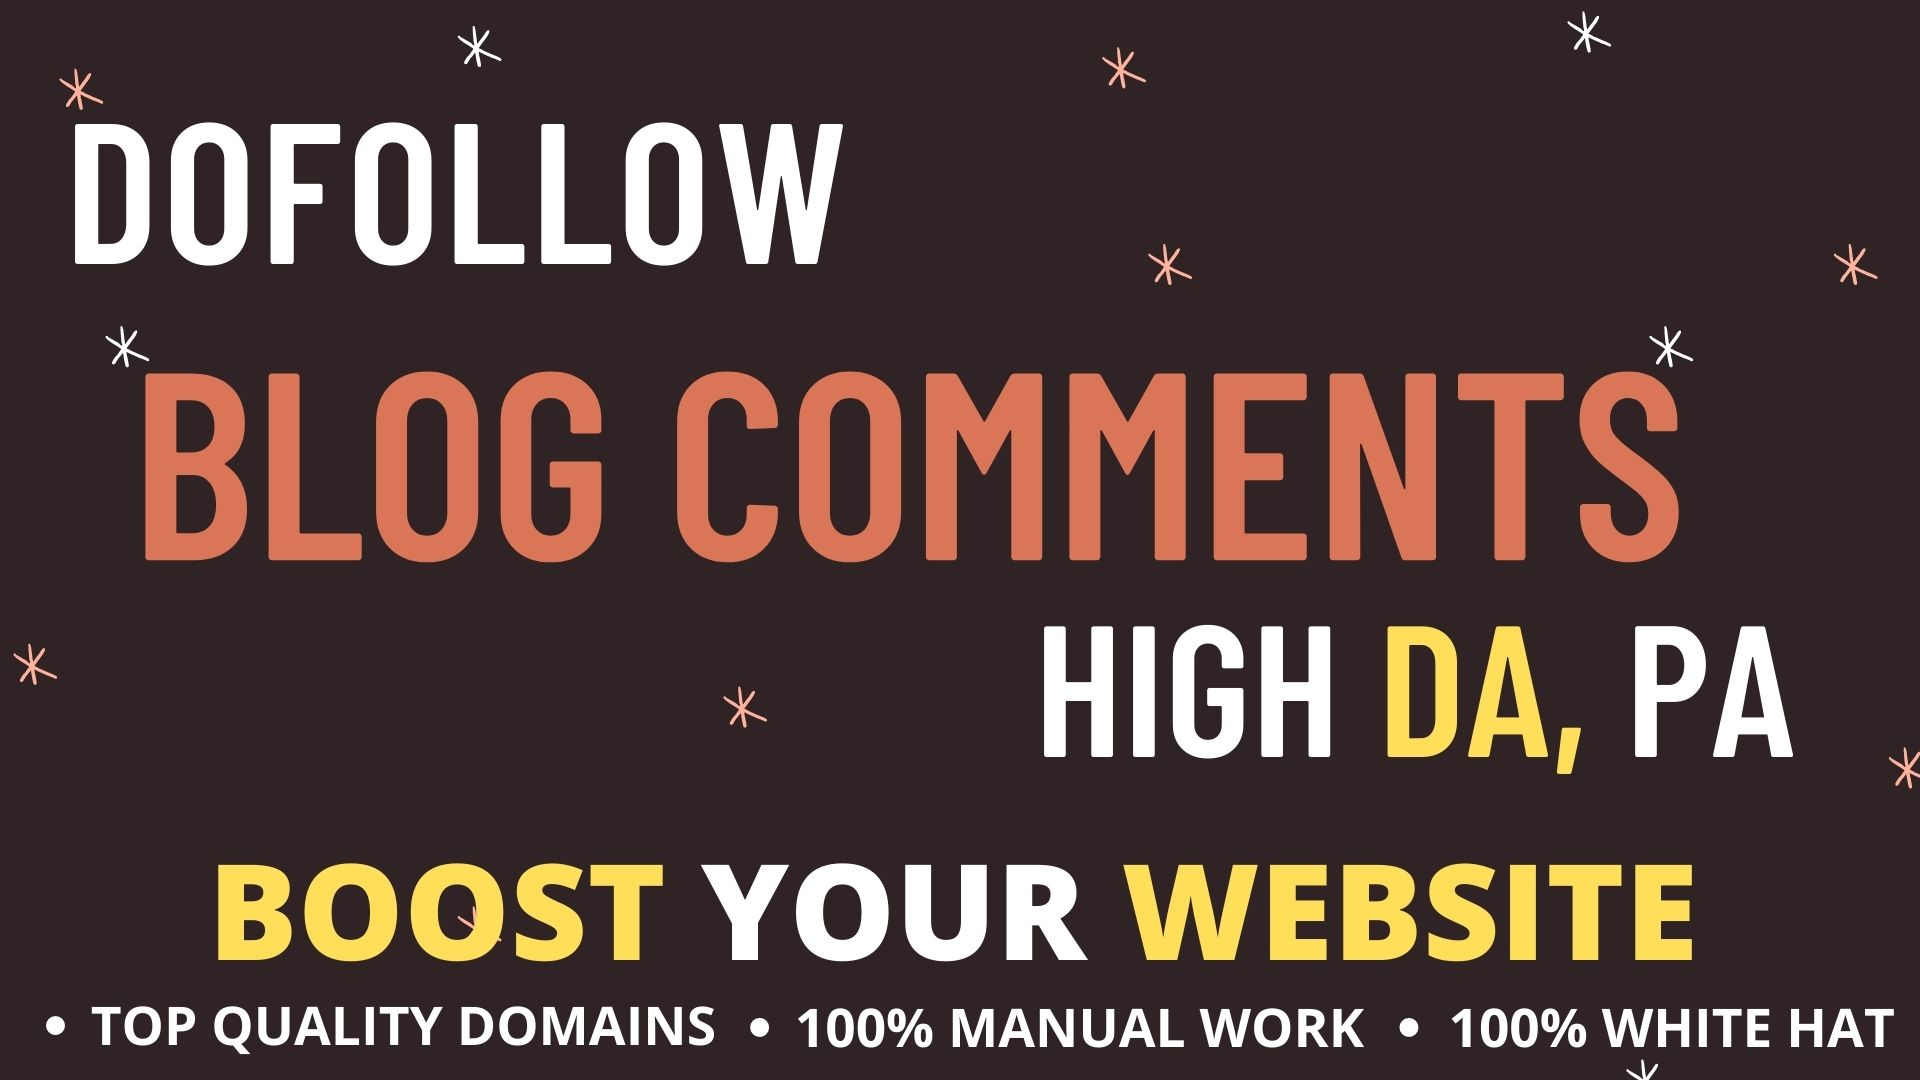 I Will Provide High DA PA 200 Do Follow Manual Blog Comments